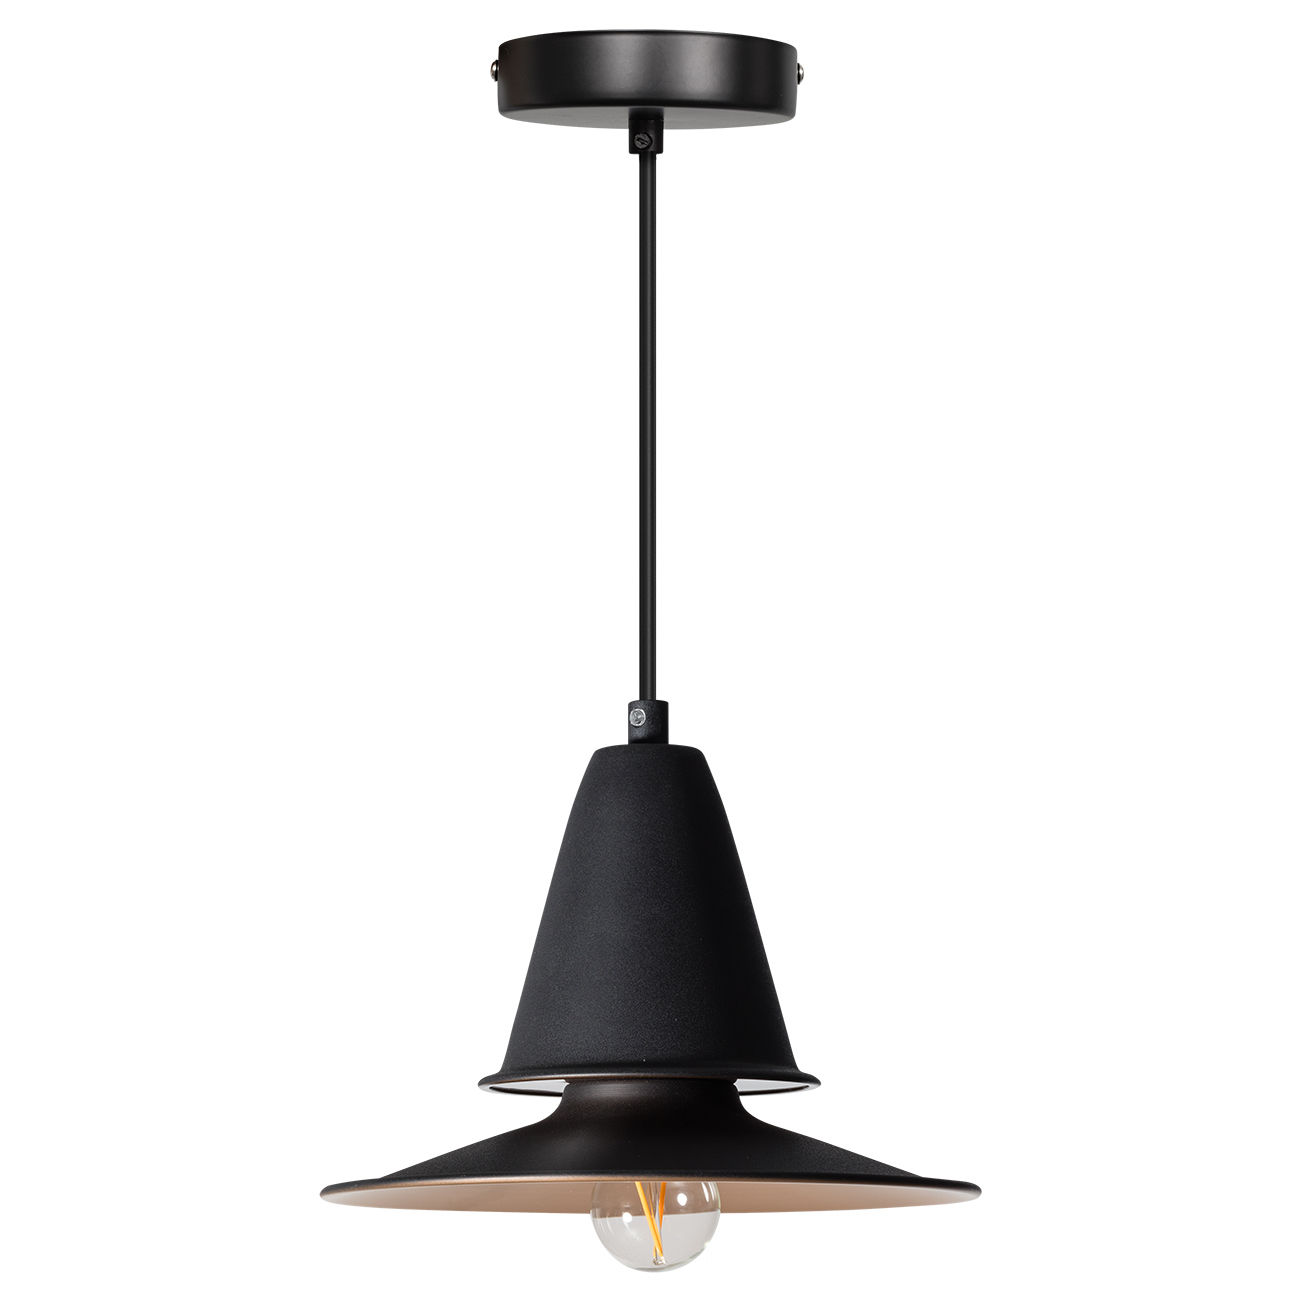 OUTLET - Midnight hanglamp ETH � 22,5cm